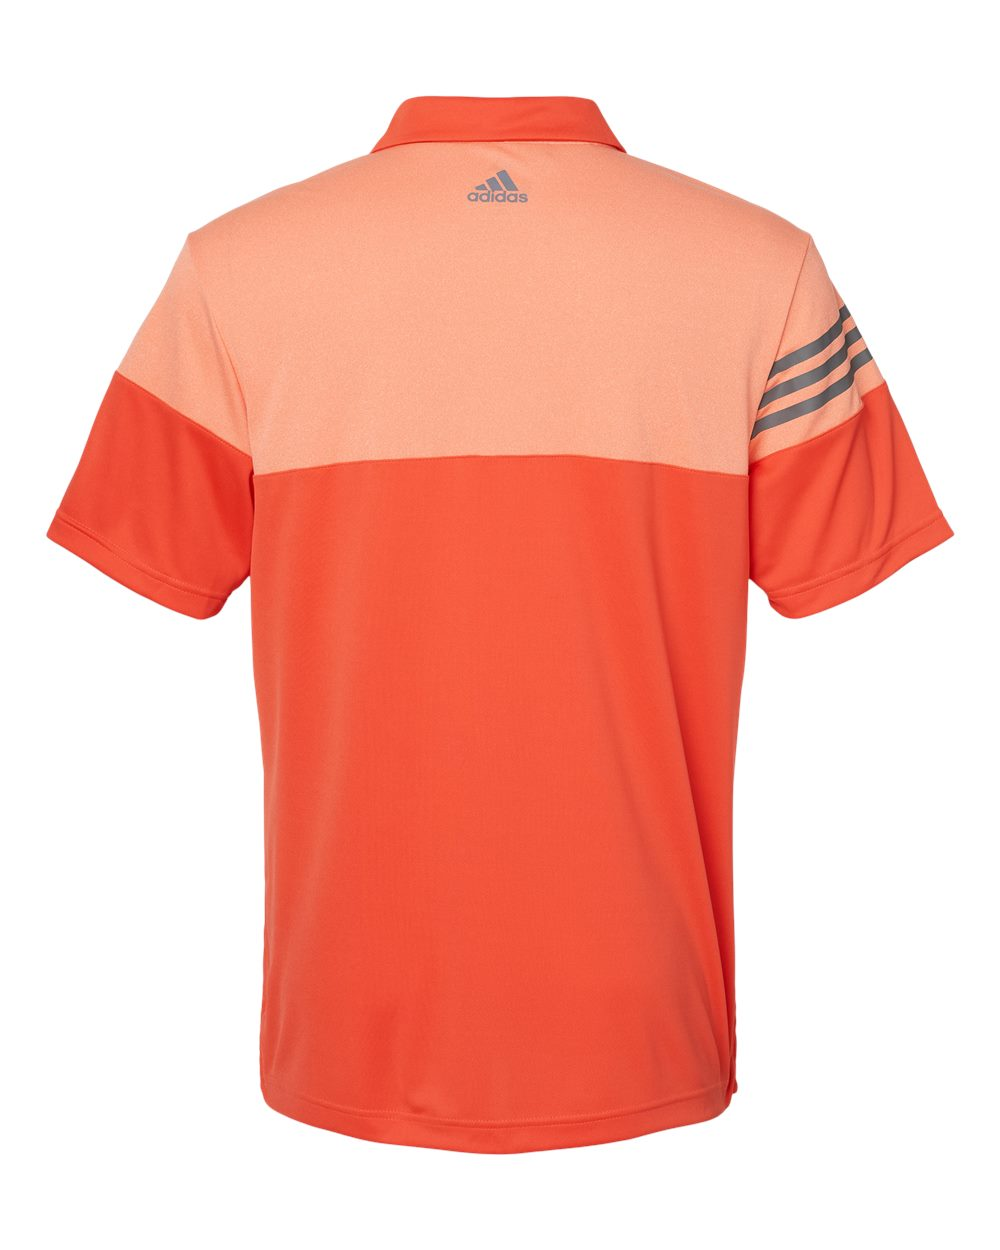 Adidas-Heather-3-Stripes-Block-Sport-Shirt-Polo-Button-A213-up-to-3XL thumbnail 10